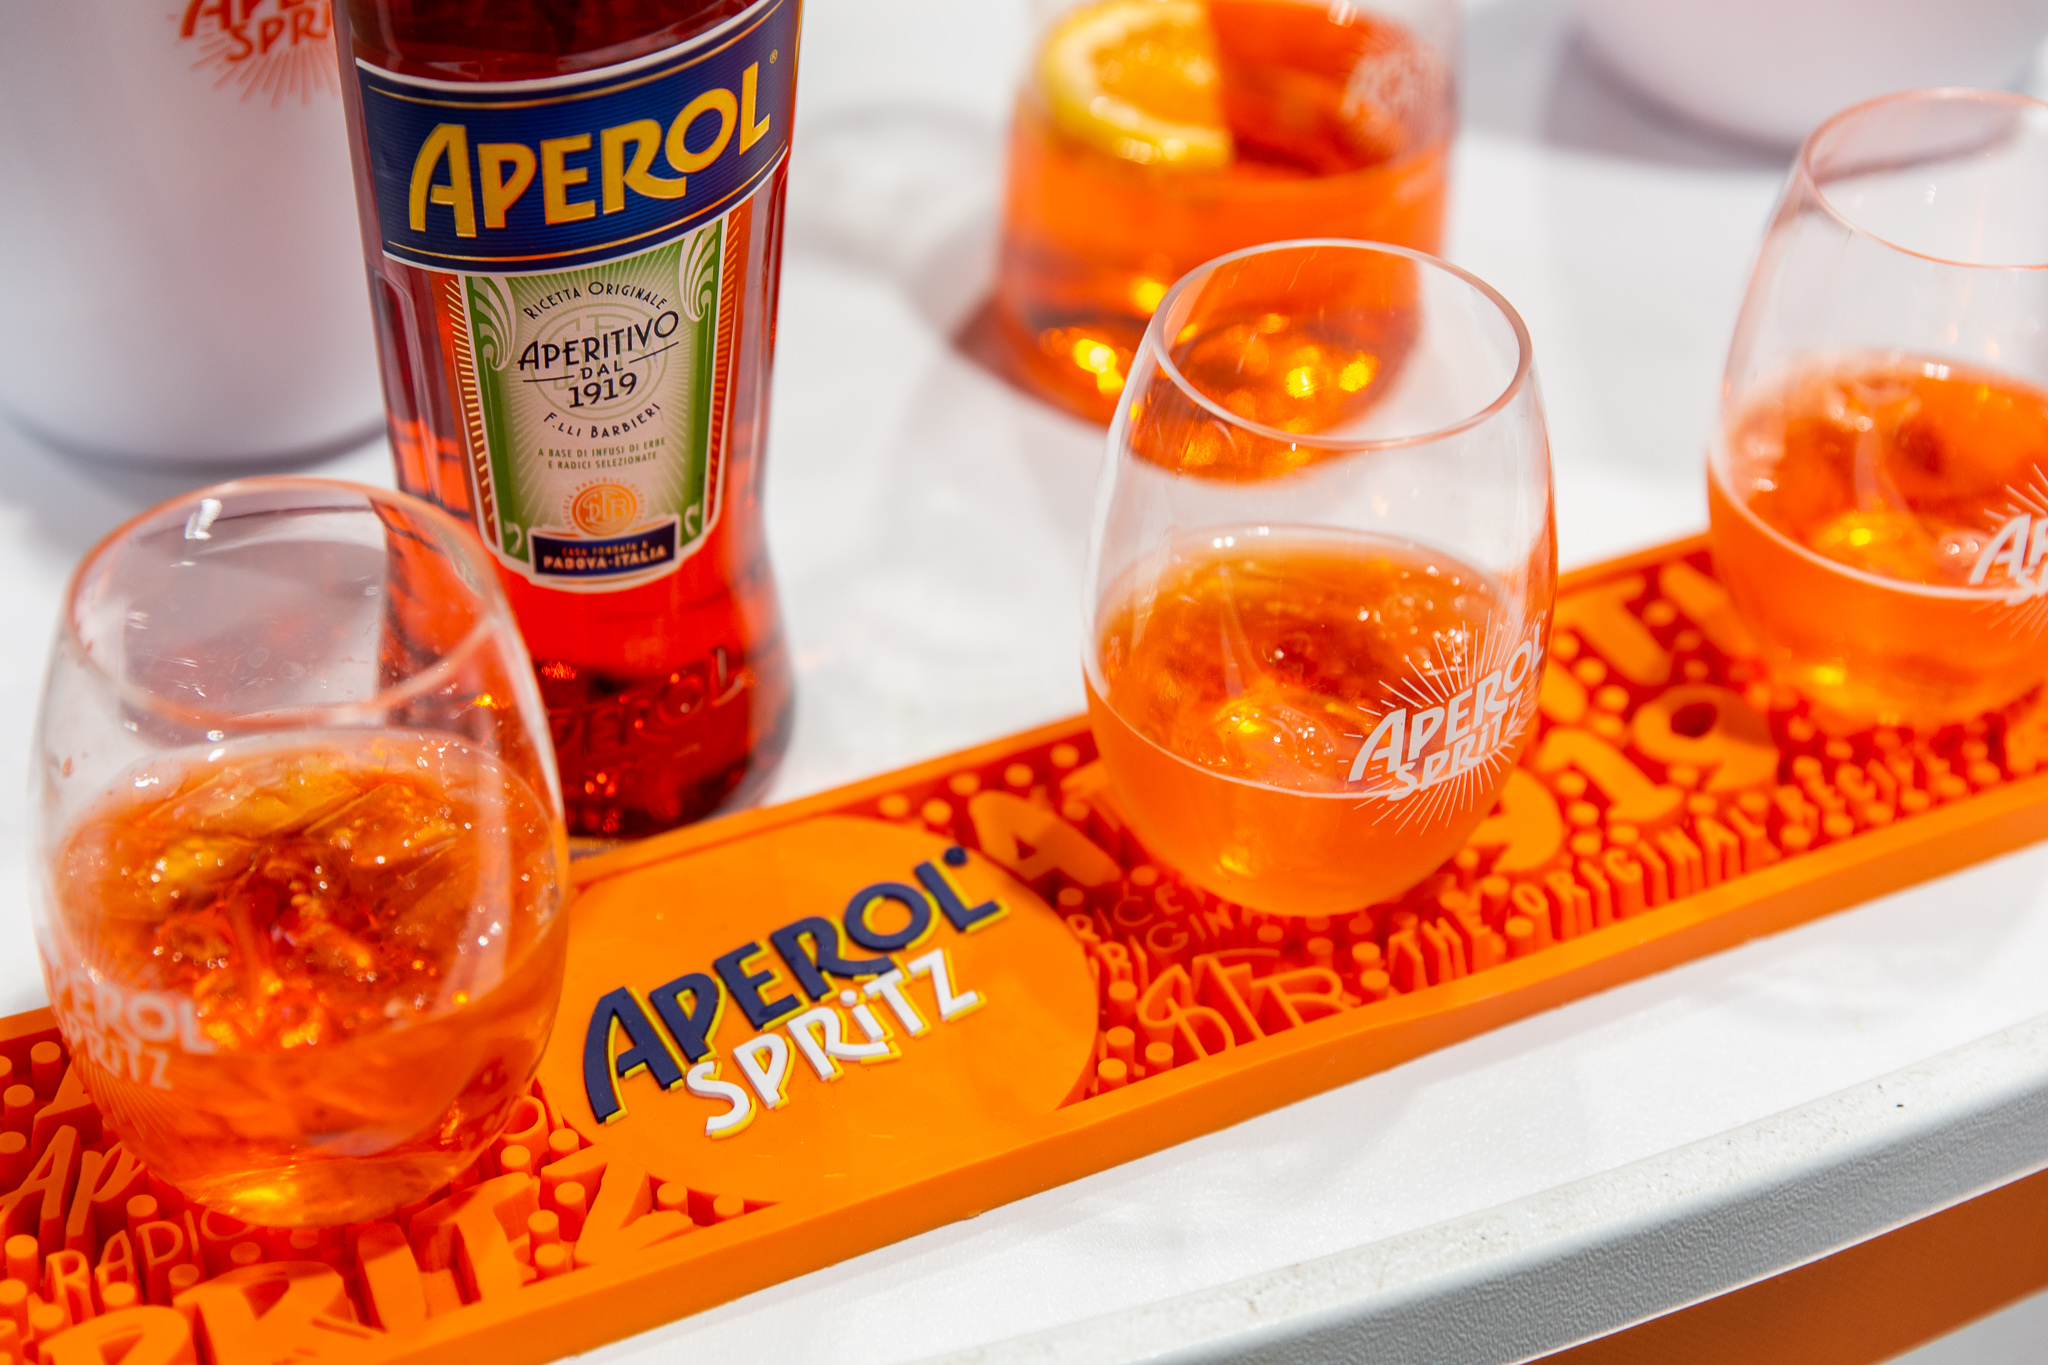 Aperol Spritz Off Premise Sampling